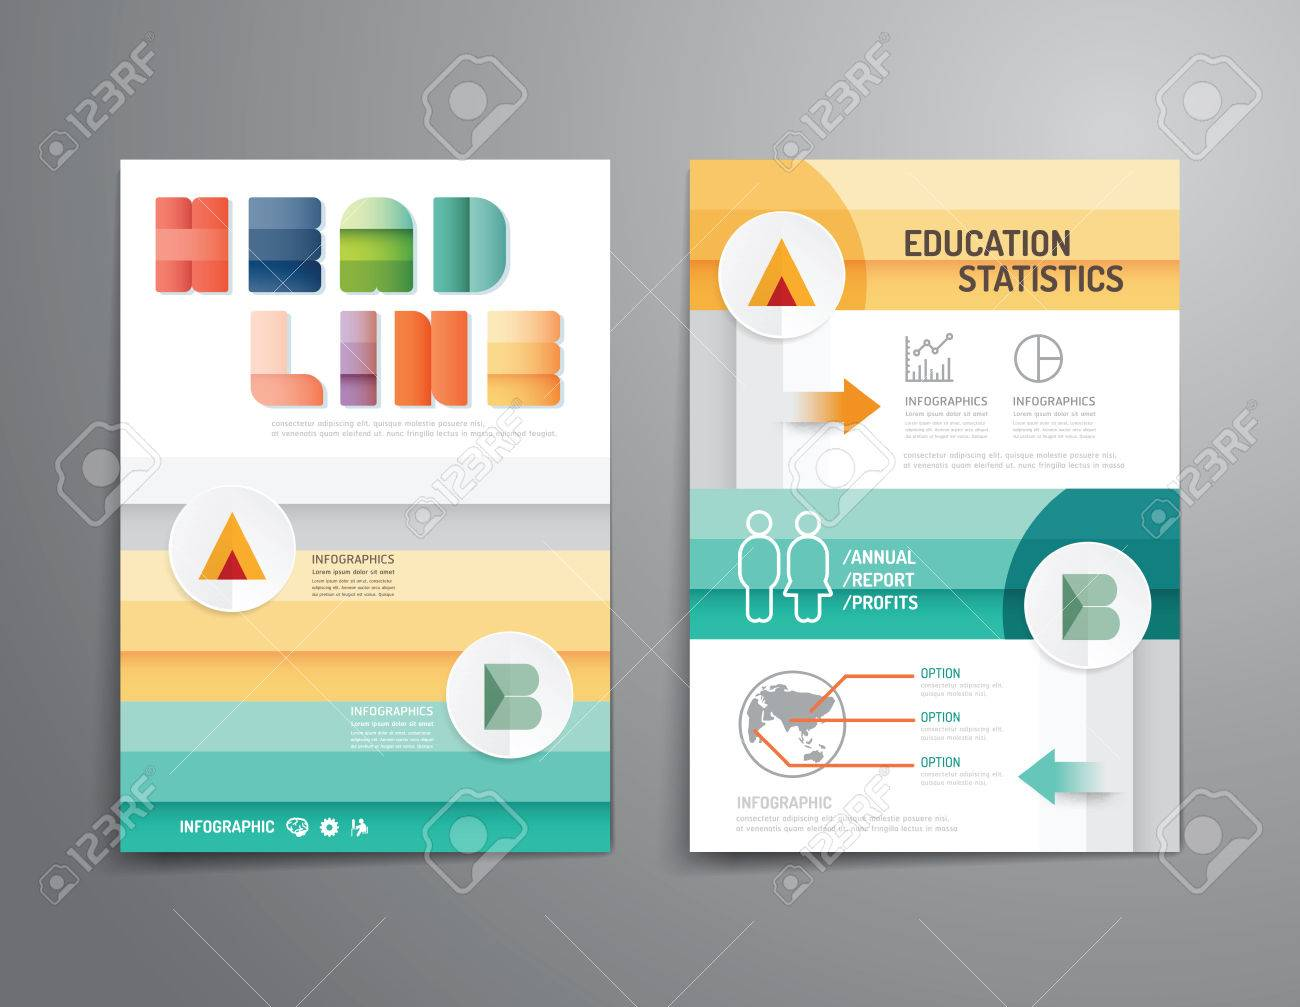 Poster design vector download - Poster Design Template Free